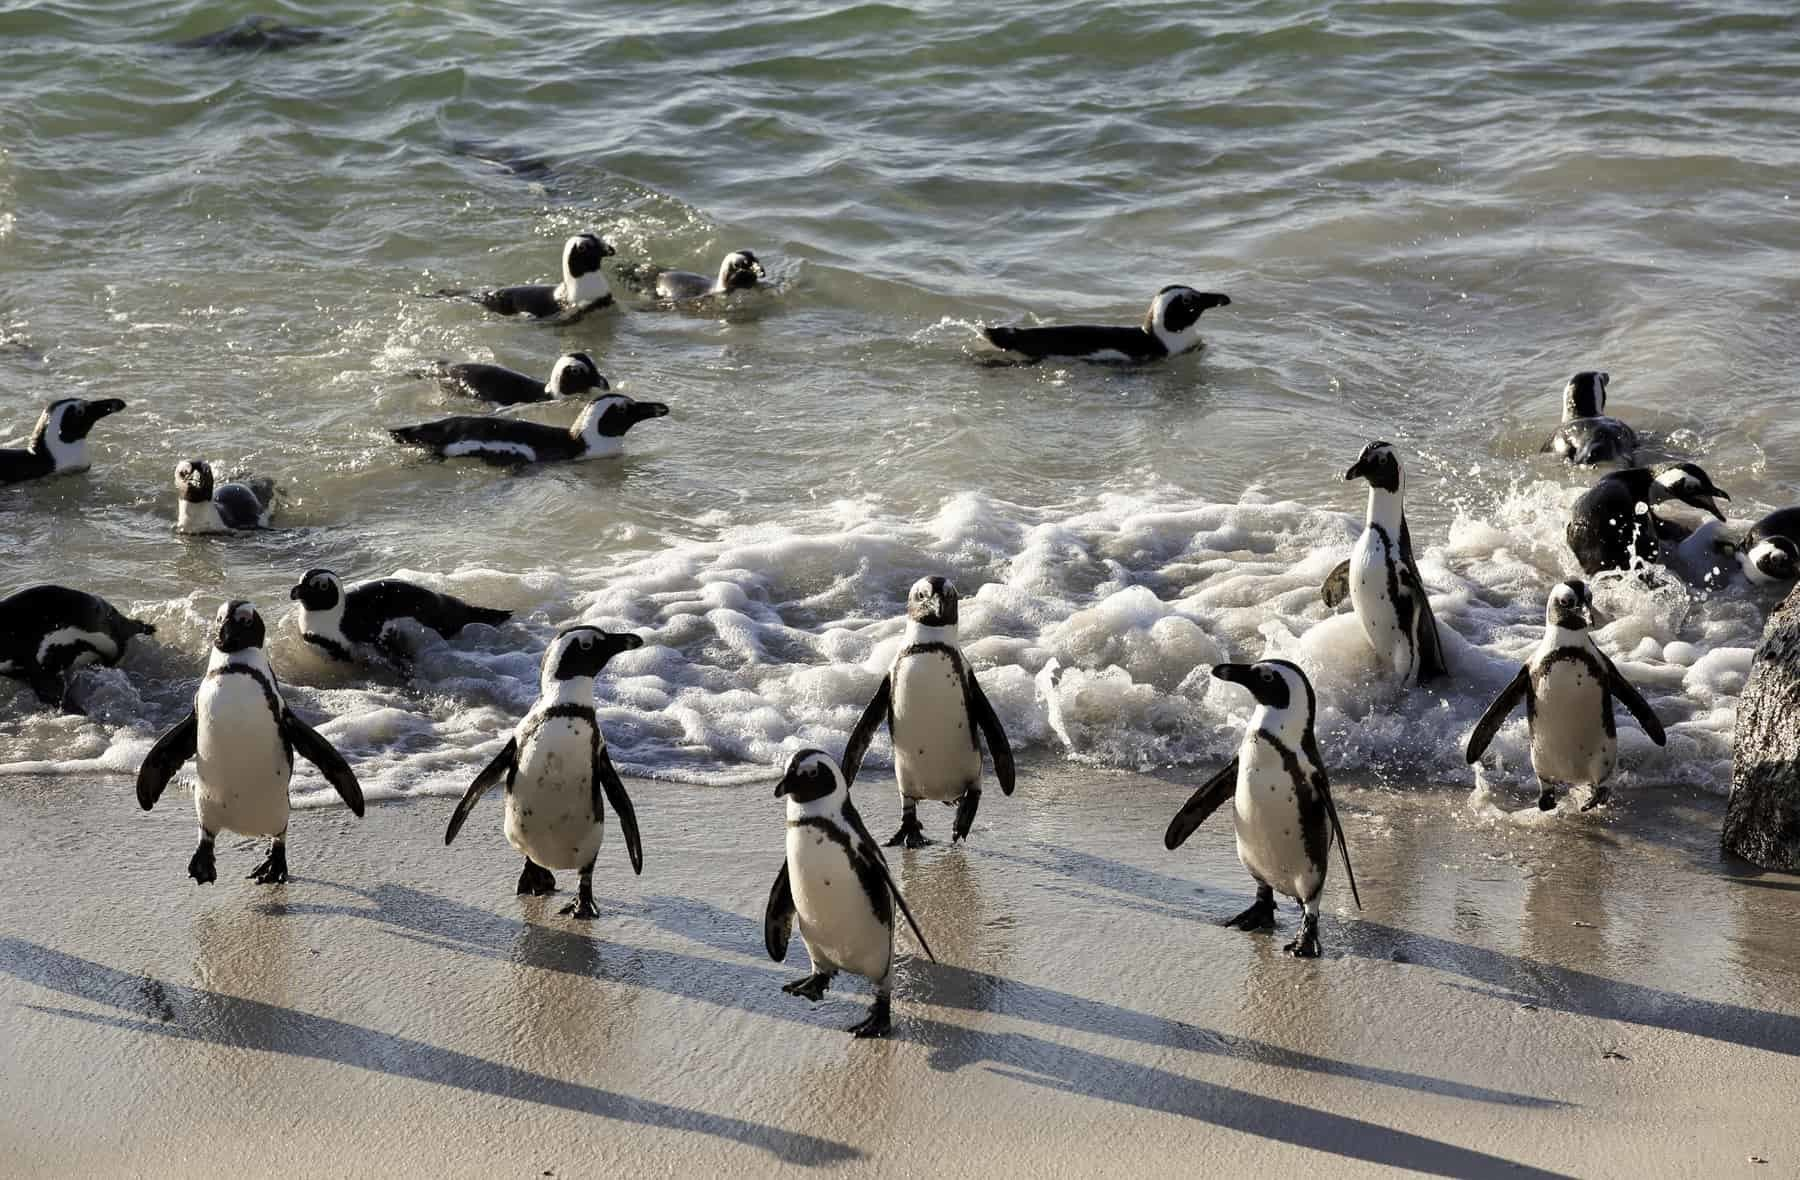 African penguins swimming on sand at Boulders Beach, Cape Town, South Africa